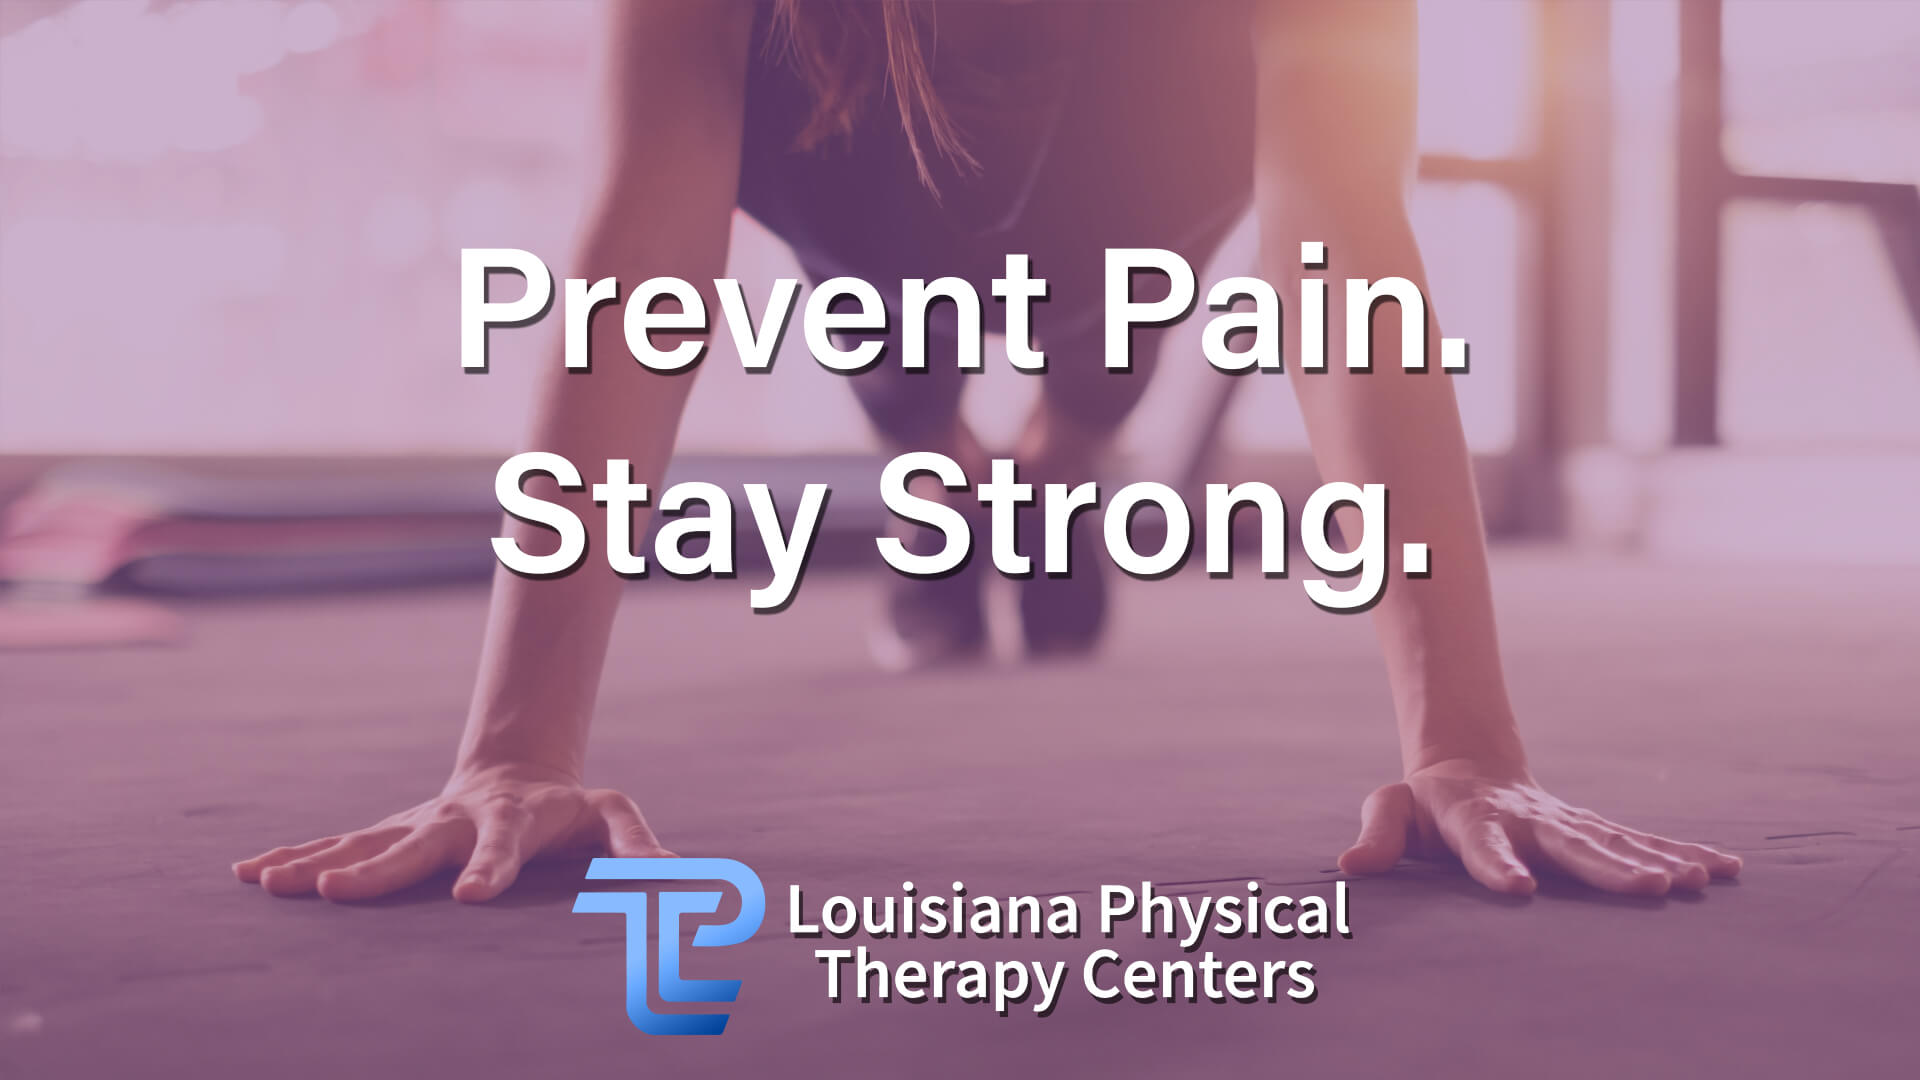 Prevent Pain. Stay Strong.